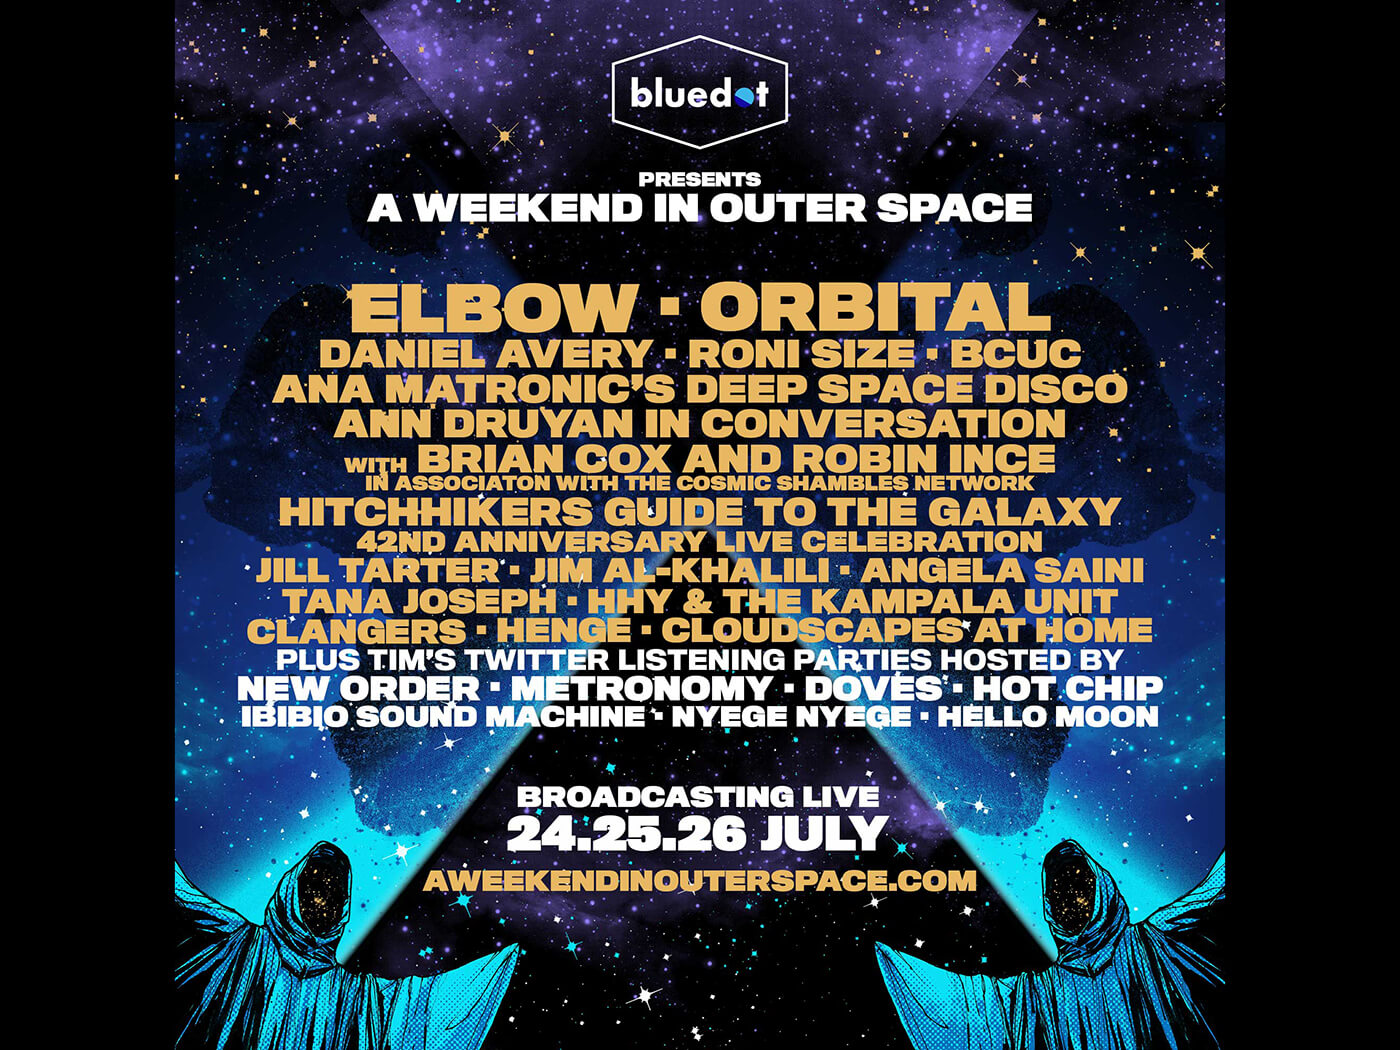 Bluedot festival to host virtual event this weekend